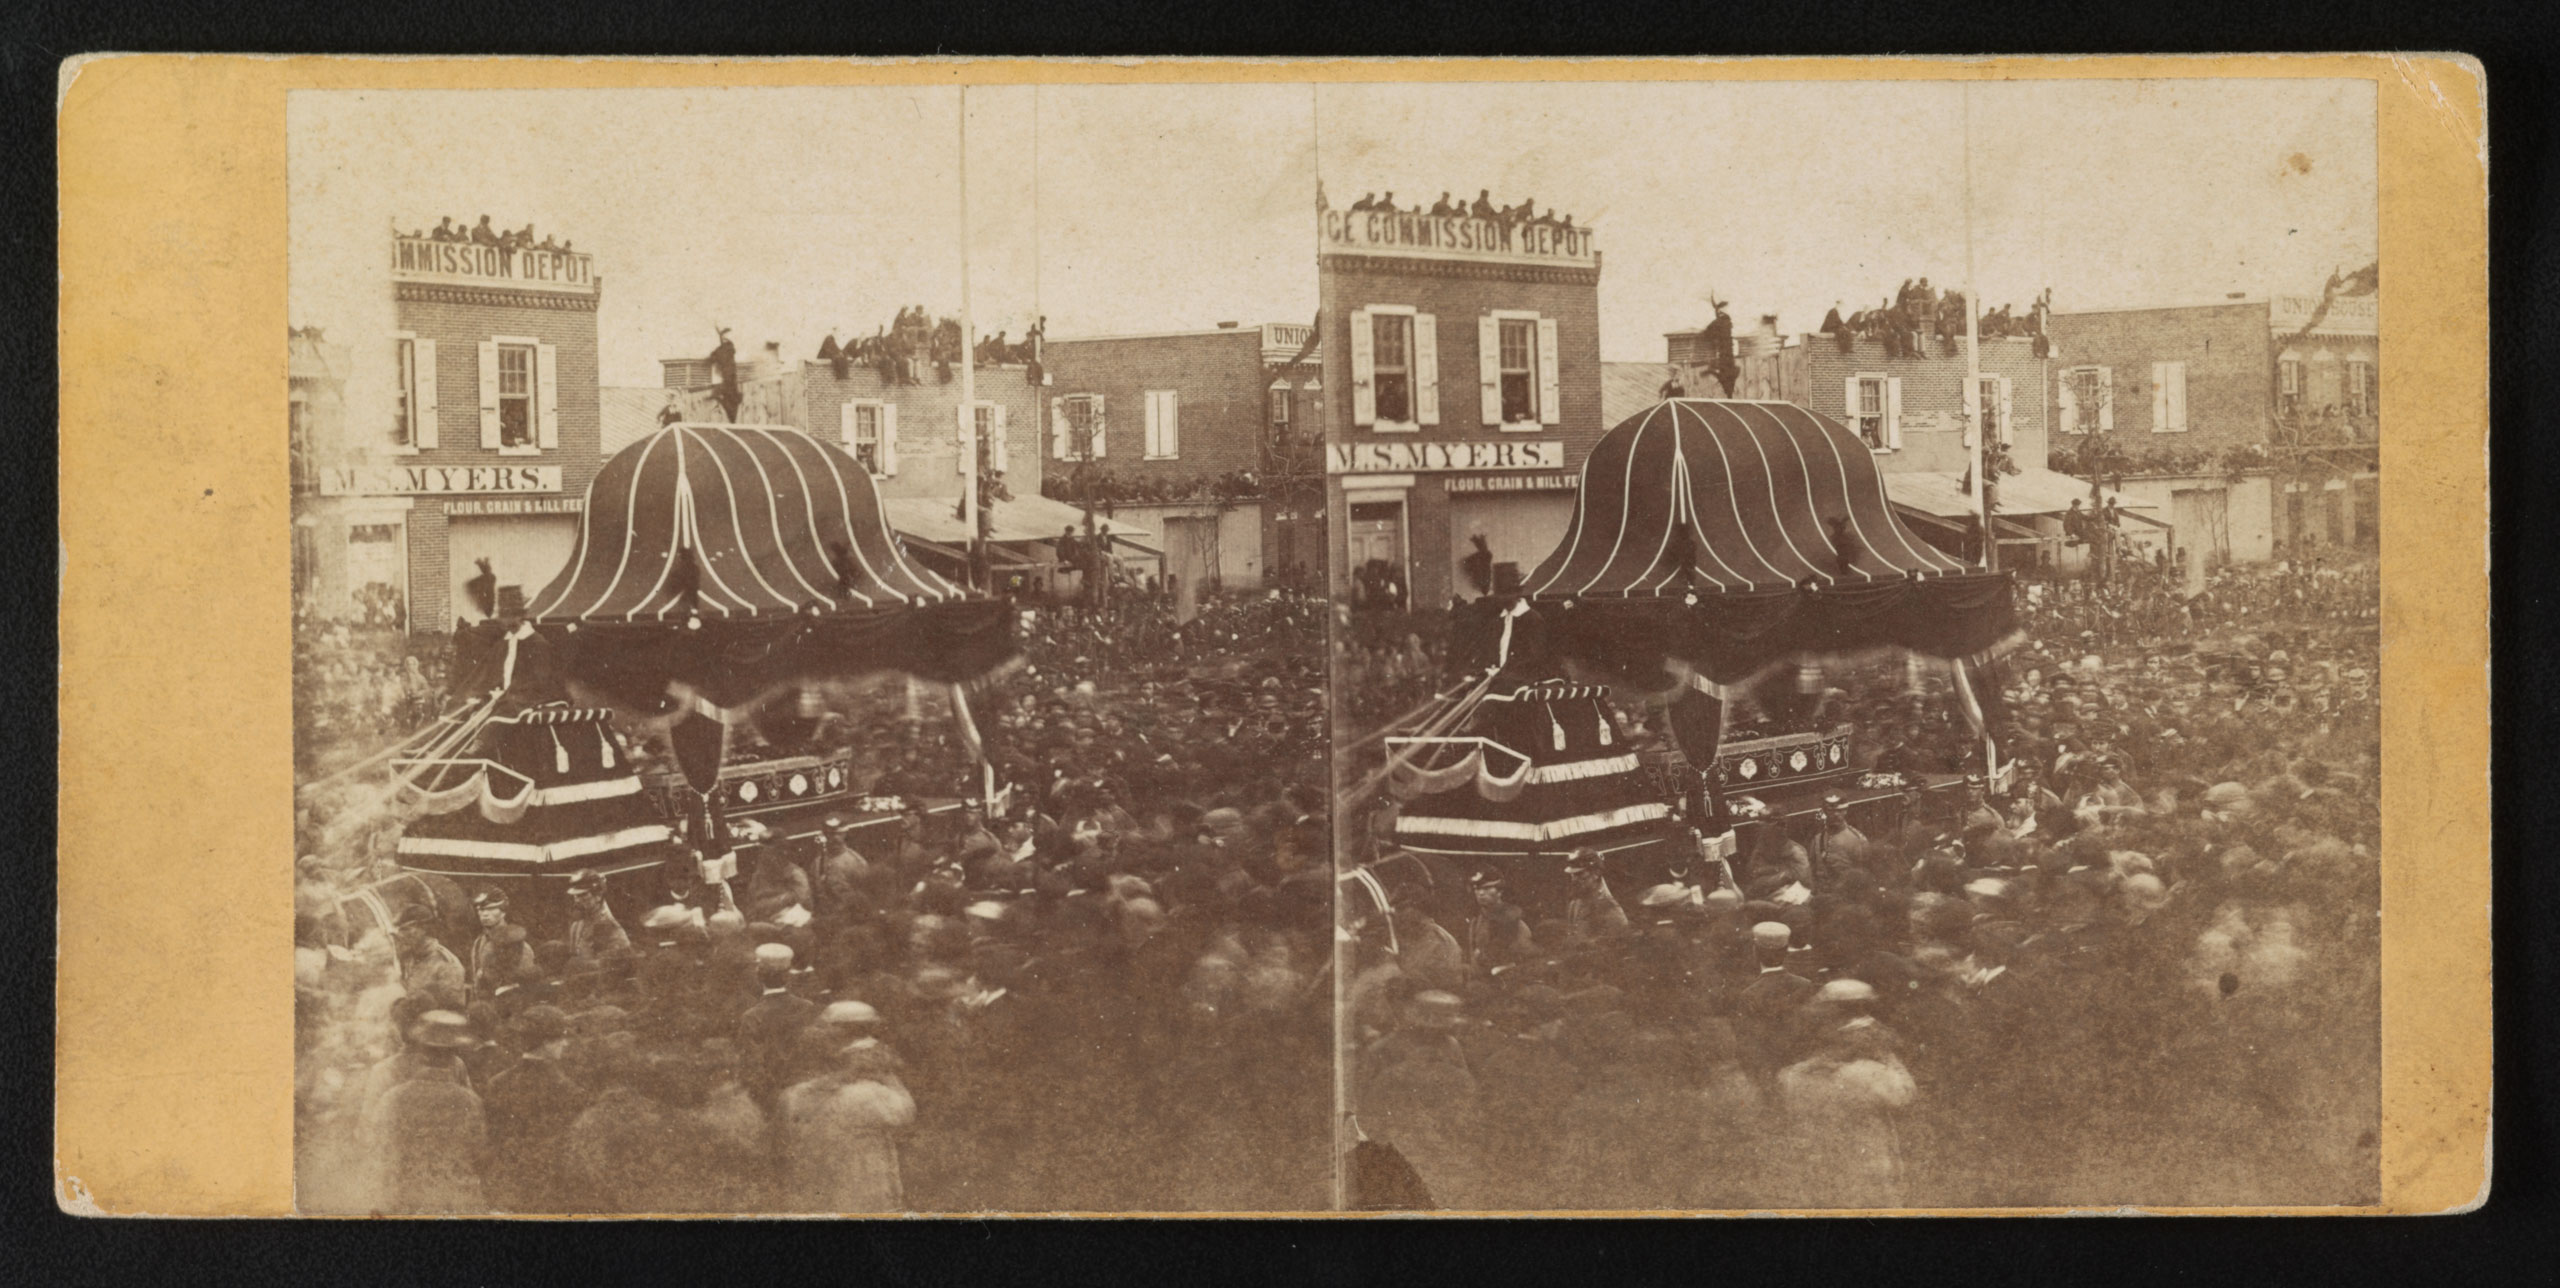 Abraham Lincoln's casket conveyed by funeral car through the crowd on Broad Street in Philadelphia, April 22, 1865.